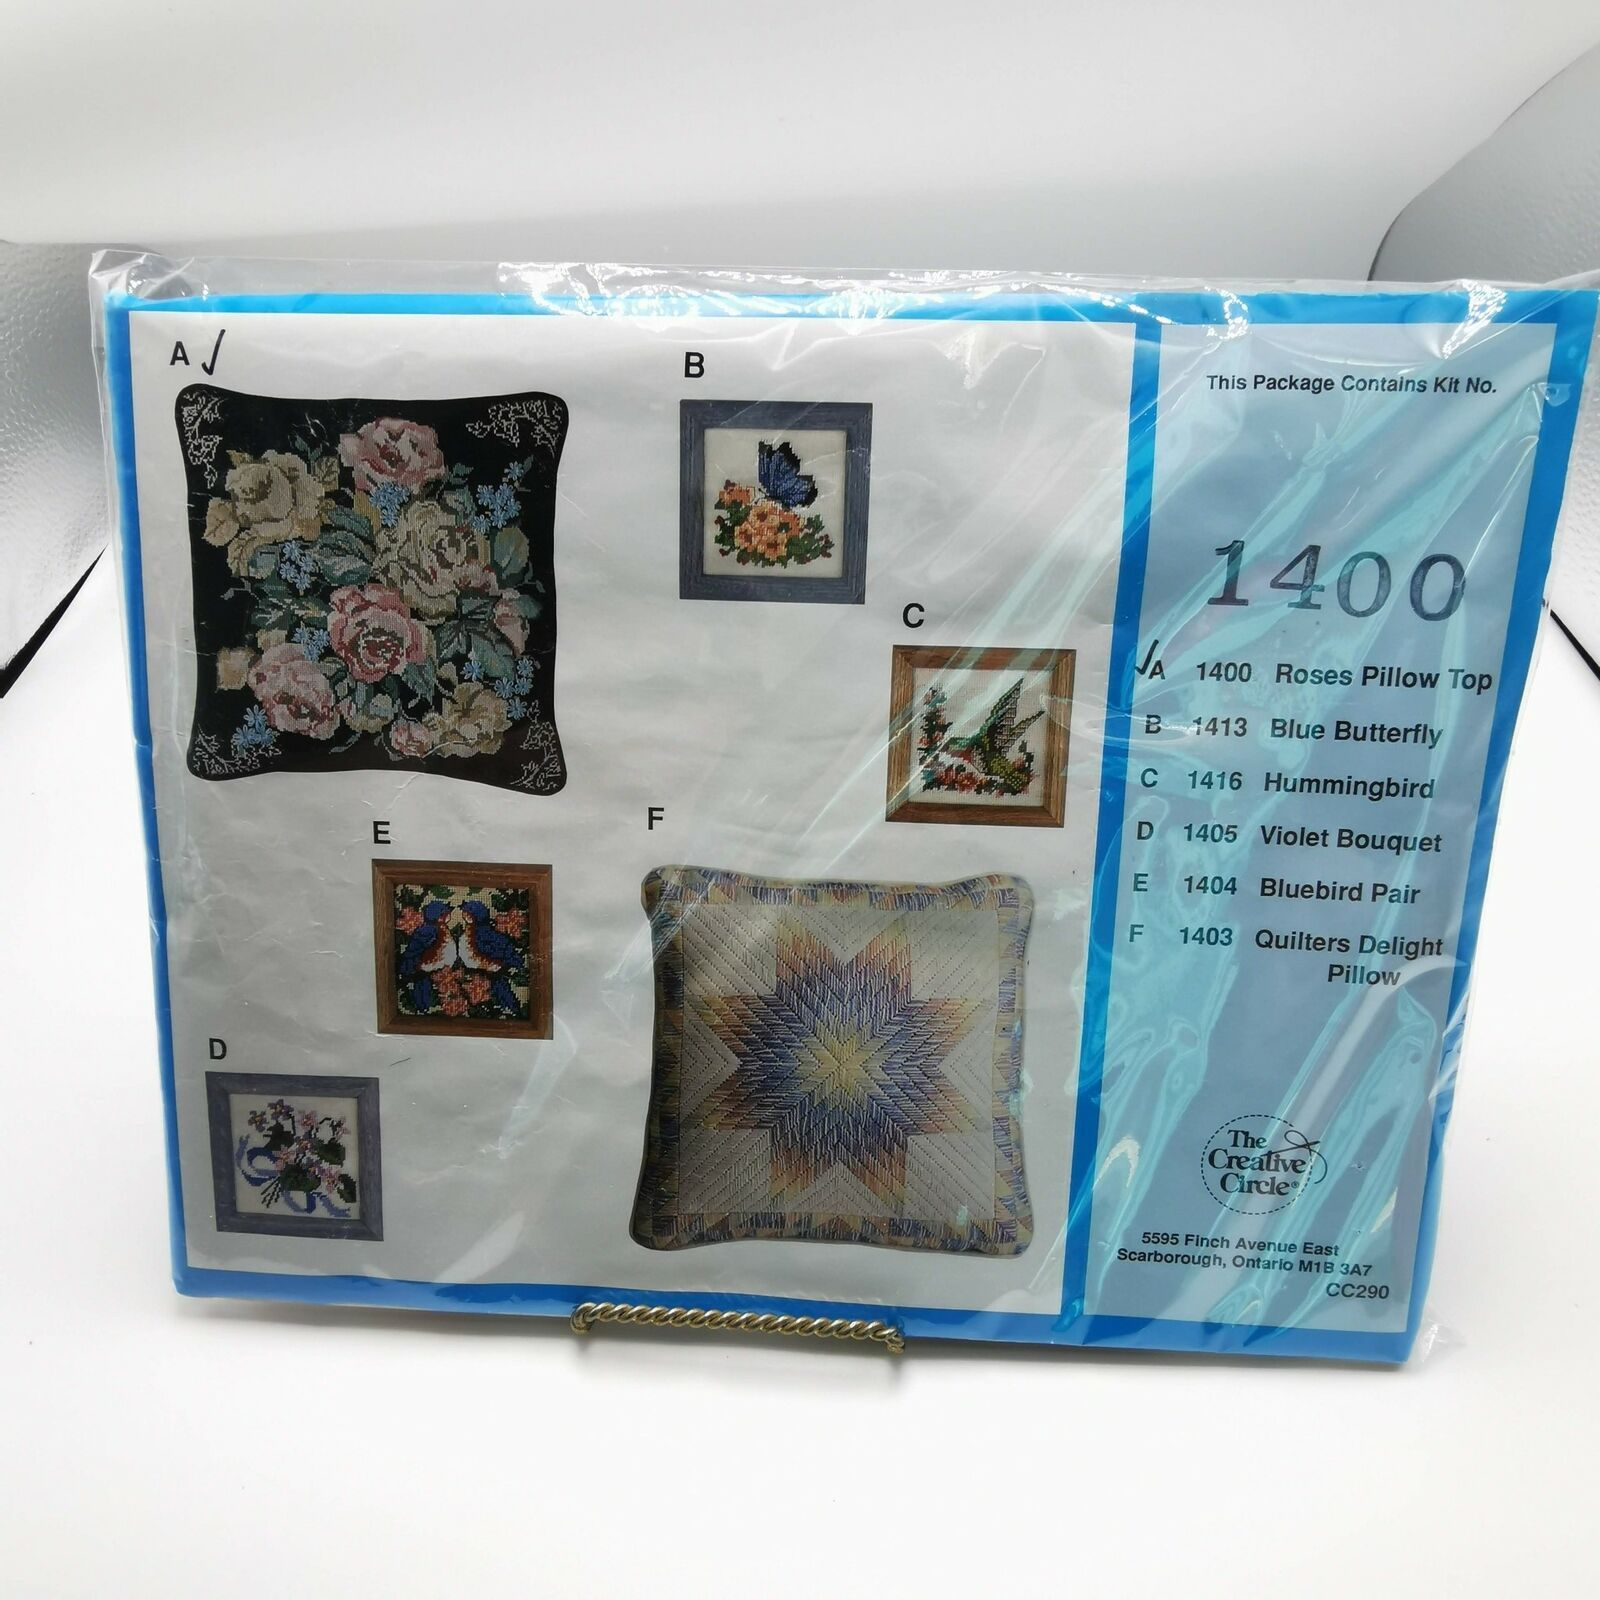 Primary image for Creative Circle 1400 Roses Pillow Top Kit Sealed